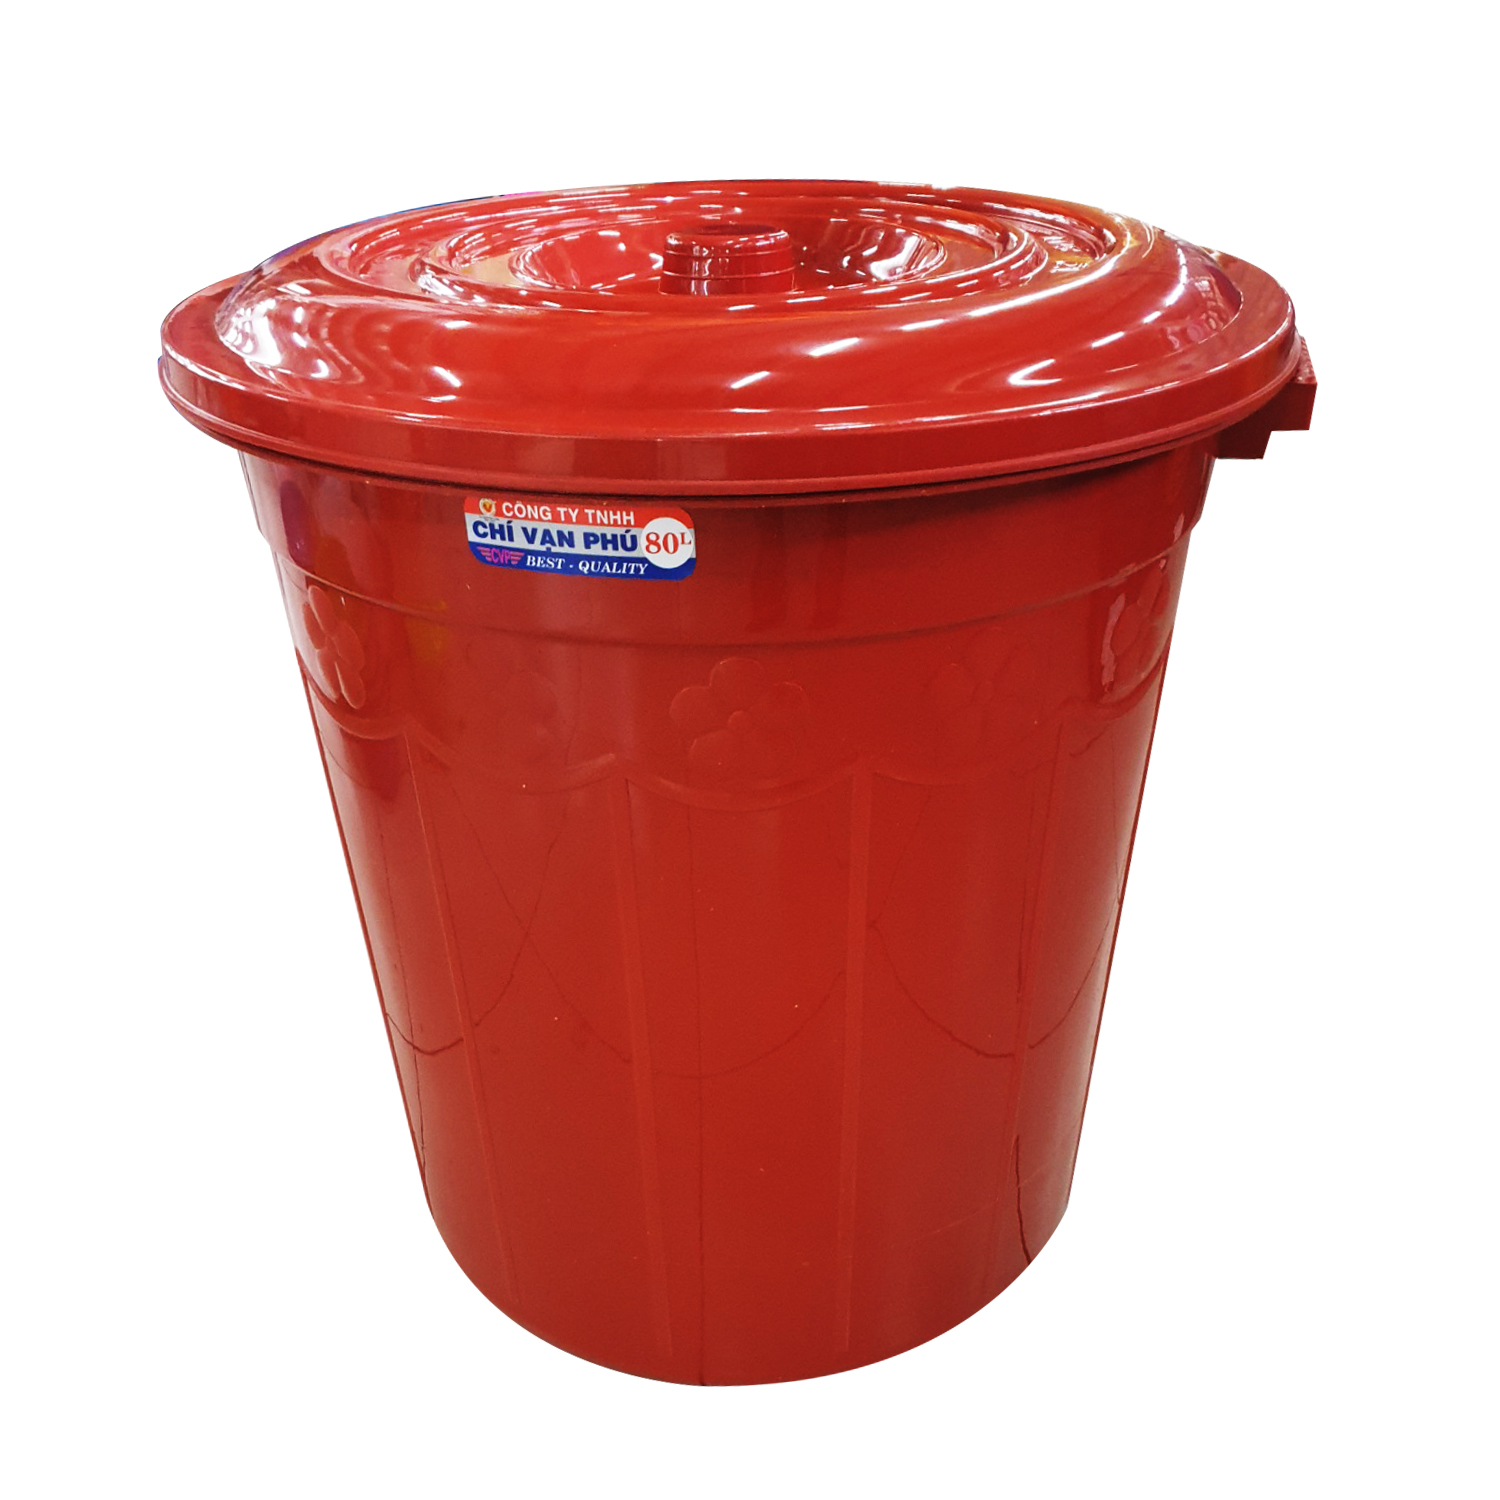 80 Ltrs Plastic Bin with Lid #320.02.0460.71